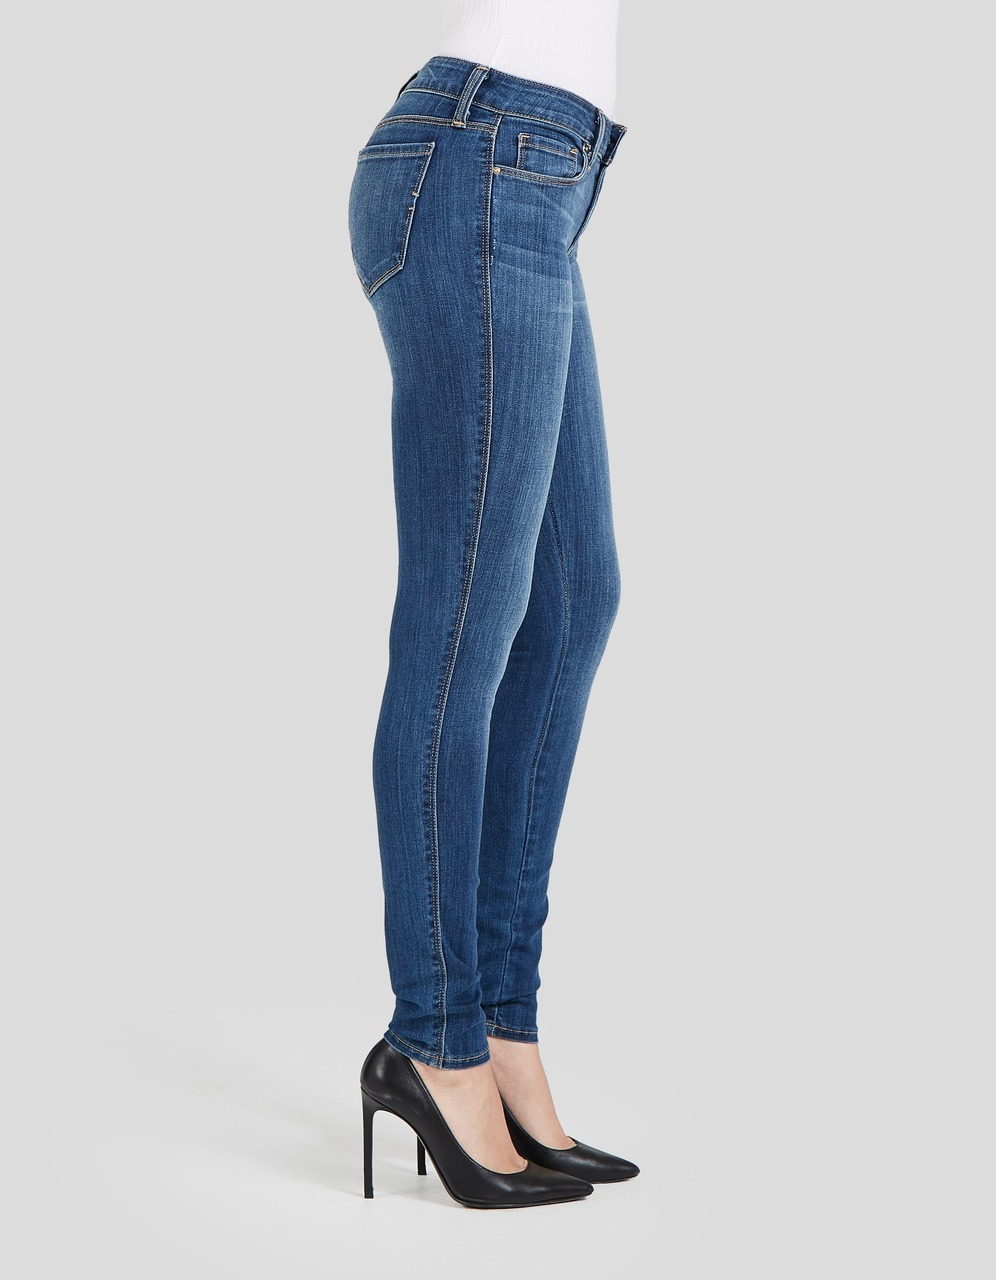 American Made Jeans from Genetic - Made in Los Angeles California